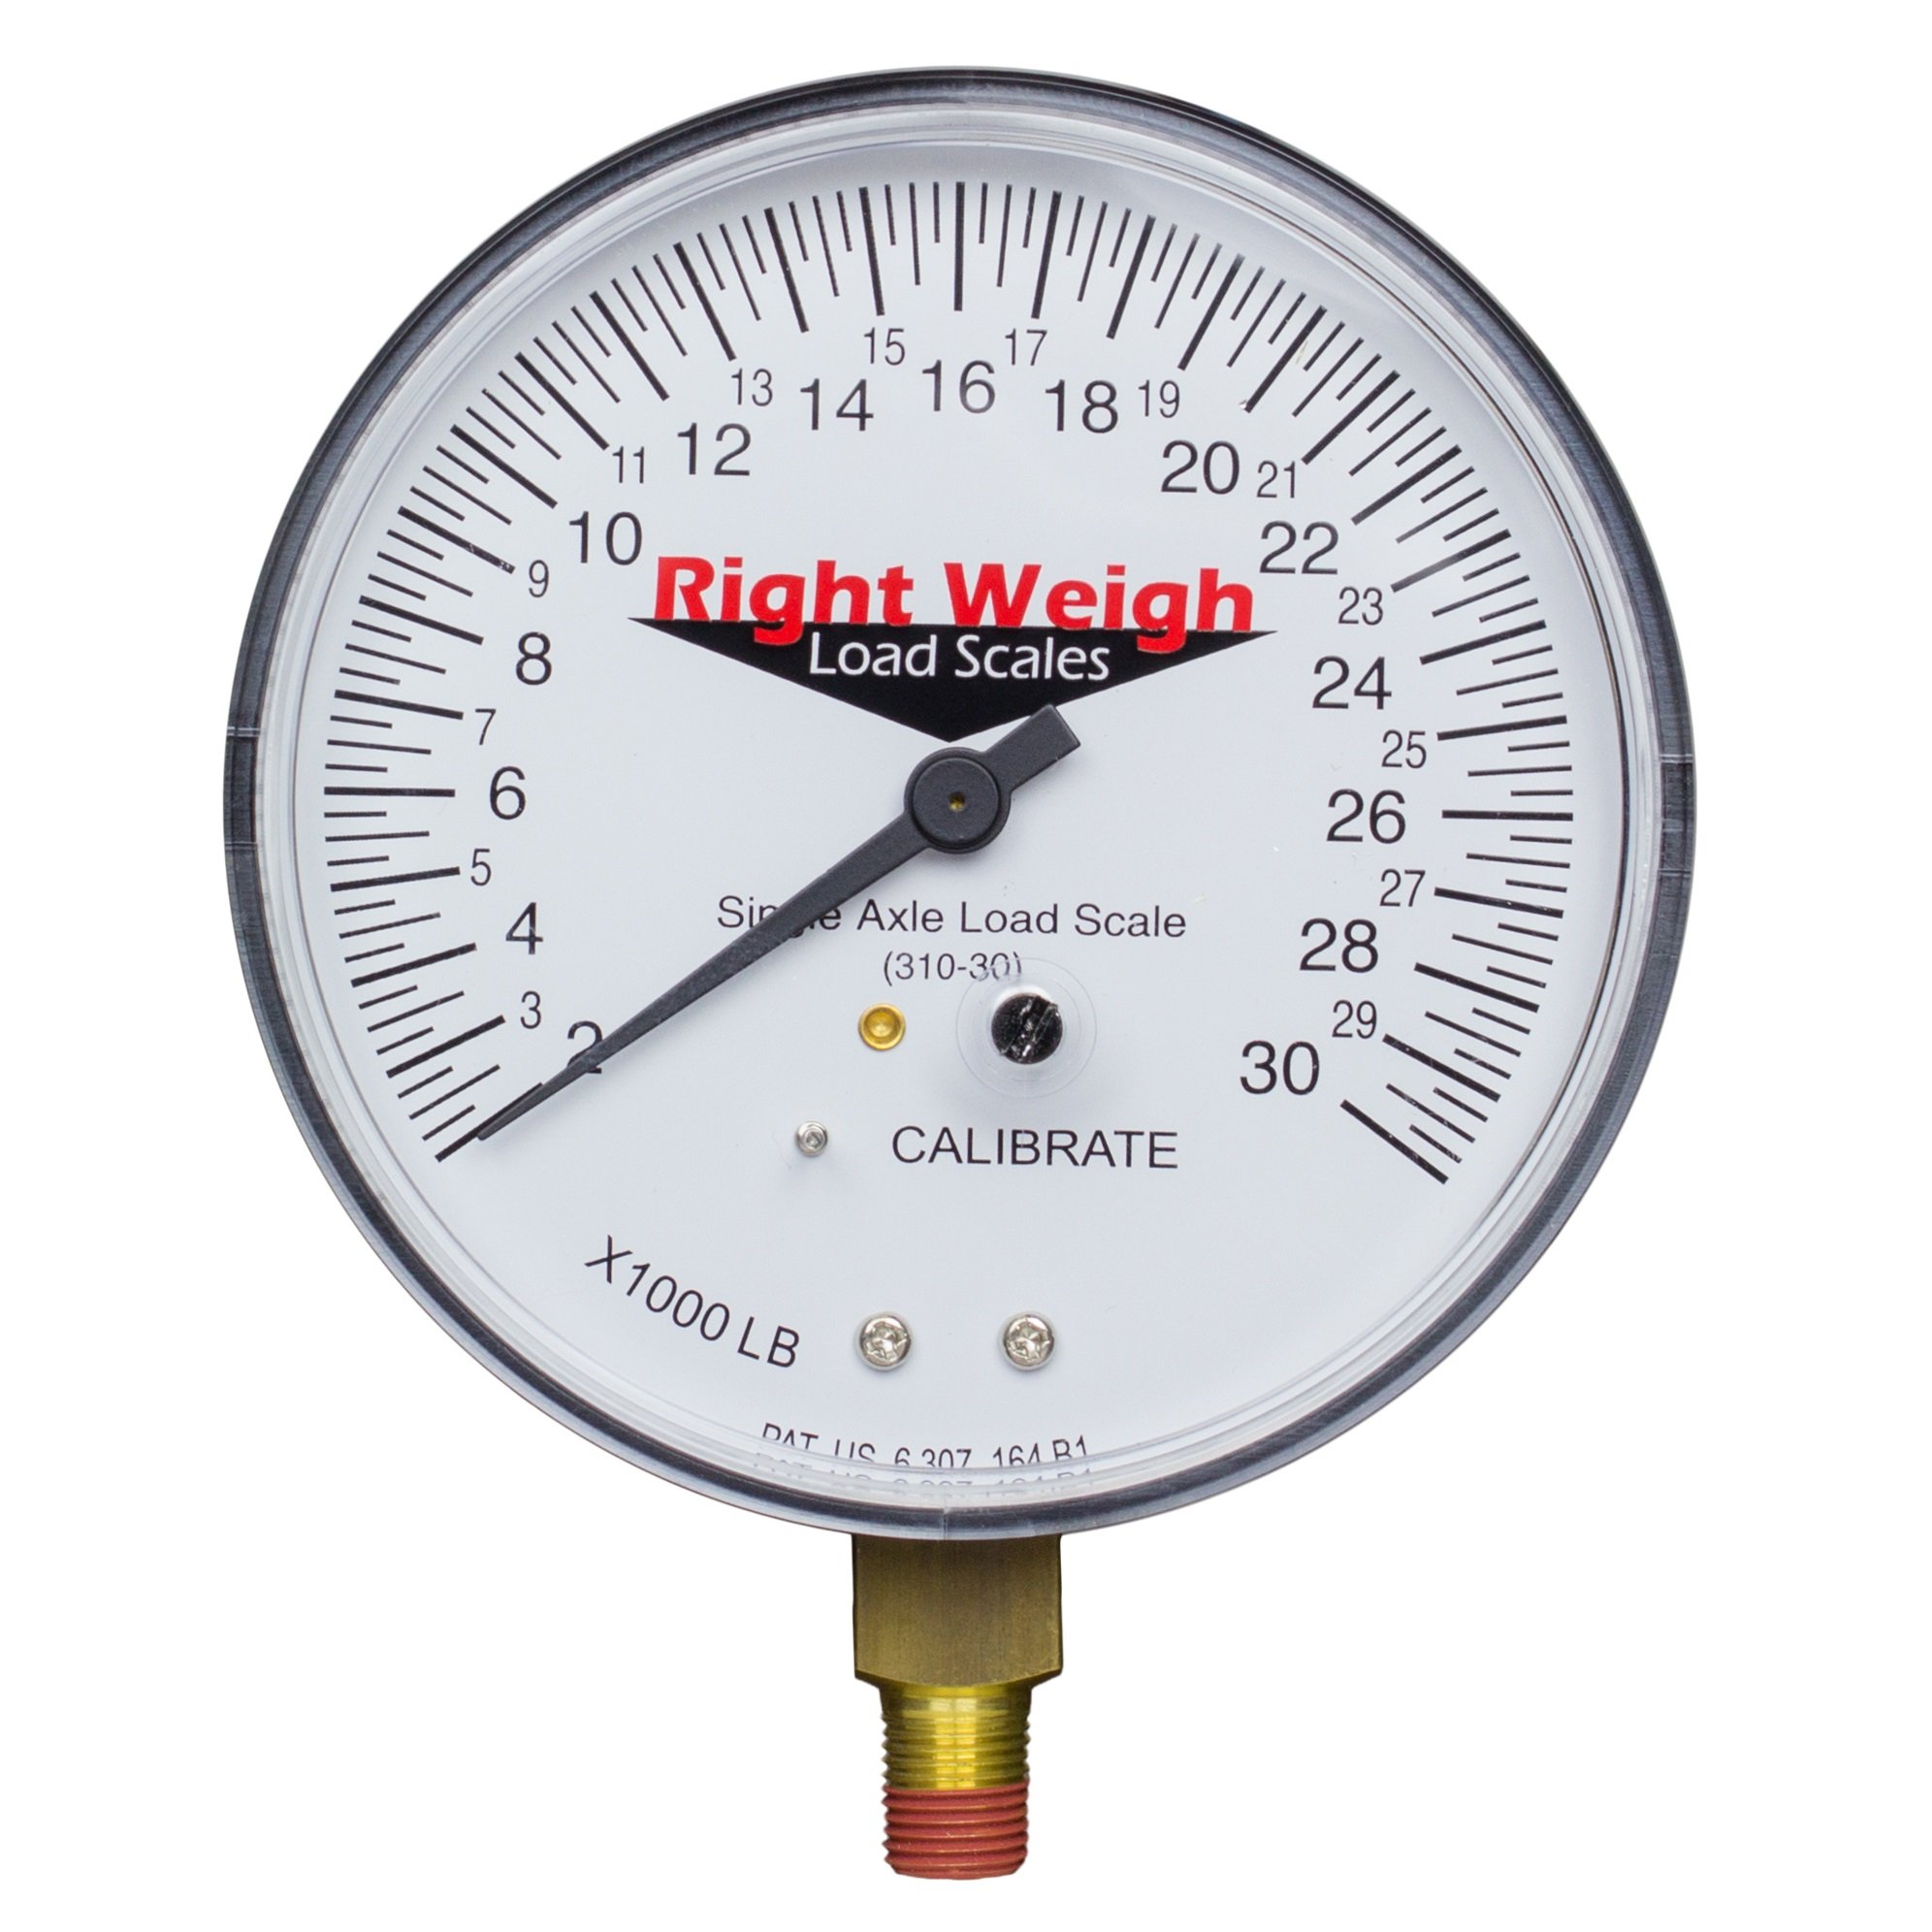 Right Weigh Replacement Gauge 310-30-GO (Gauge Only) Single-Axle Exterior Analog Load Scale - for Single Height Control Valve Air Suspensions